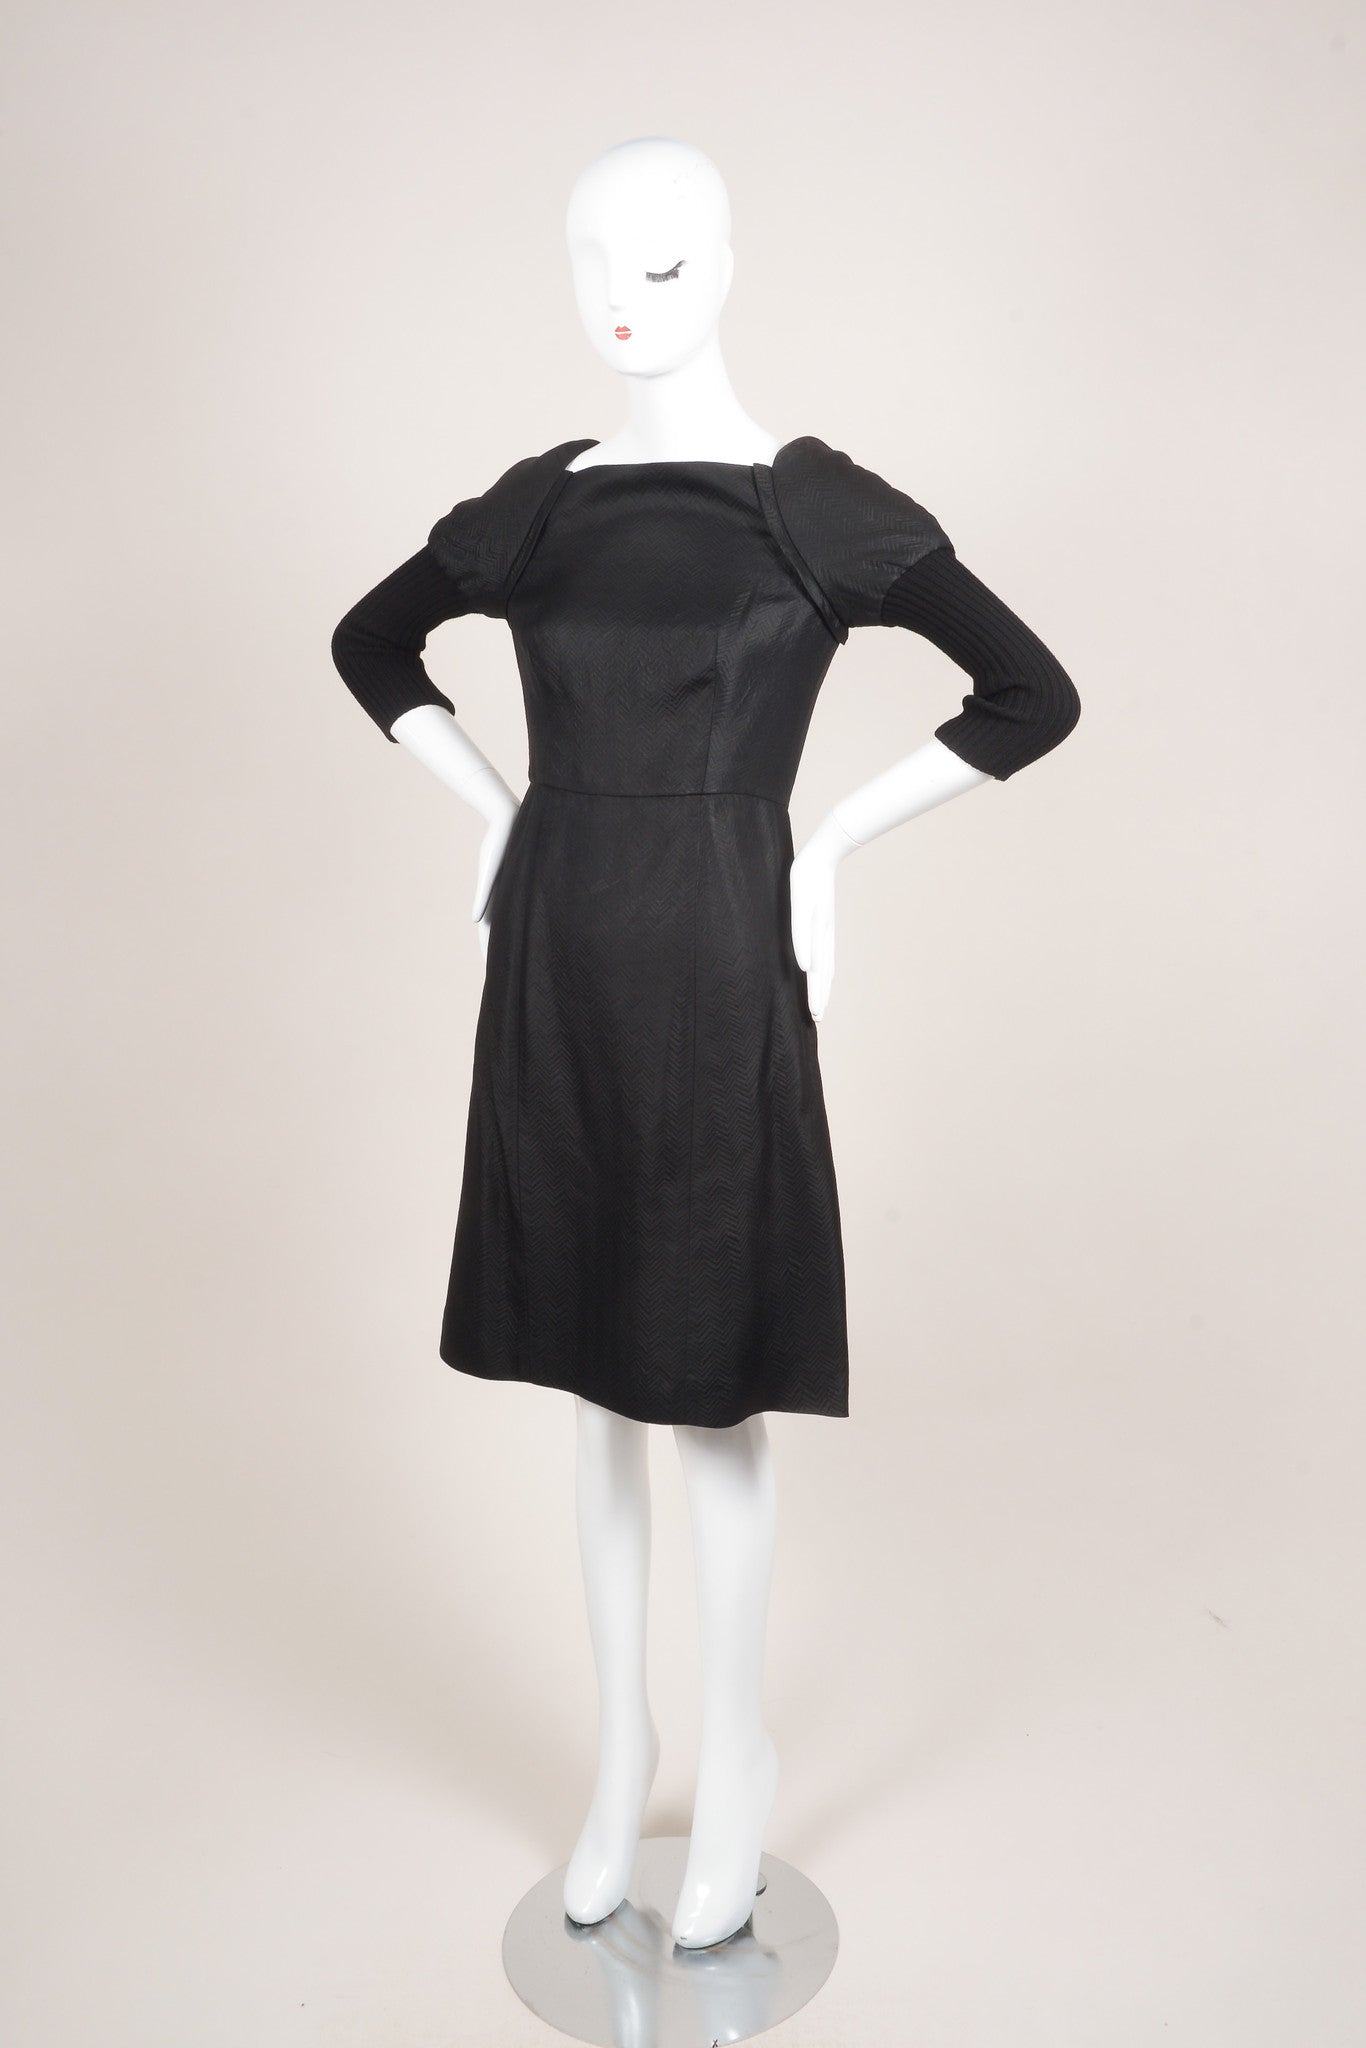 Vera Wang Black Zig Zag Mattelasse Combo Juliet Sleeve Sheath Dress Sideview